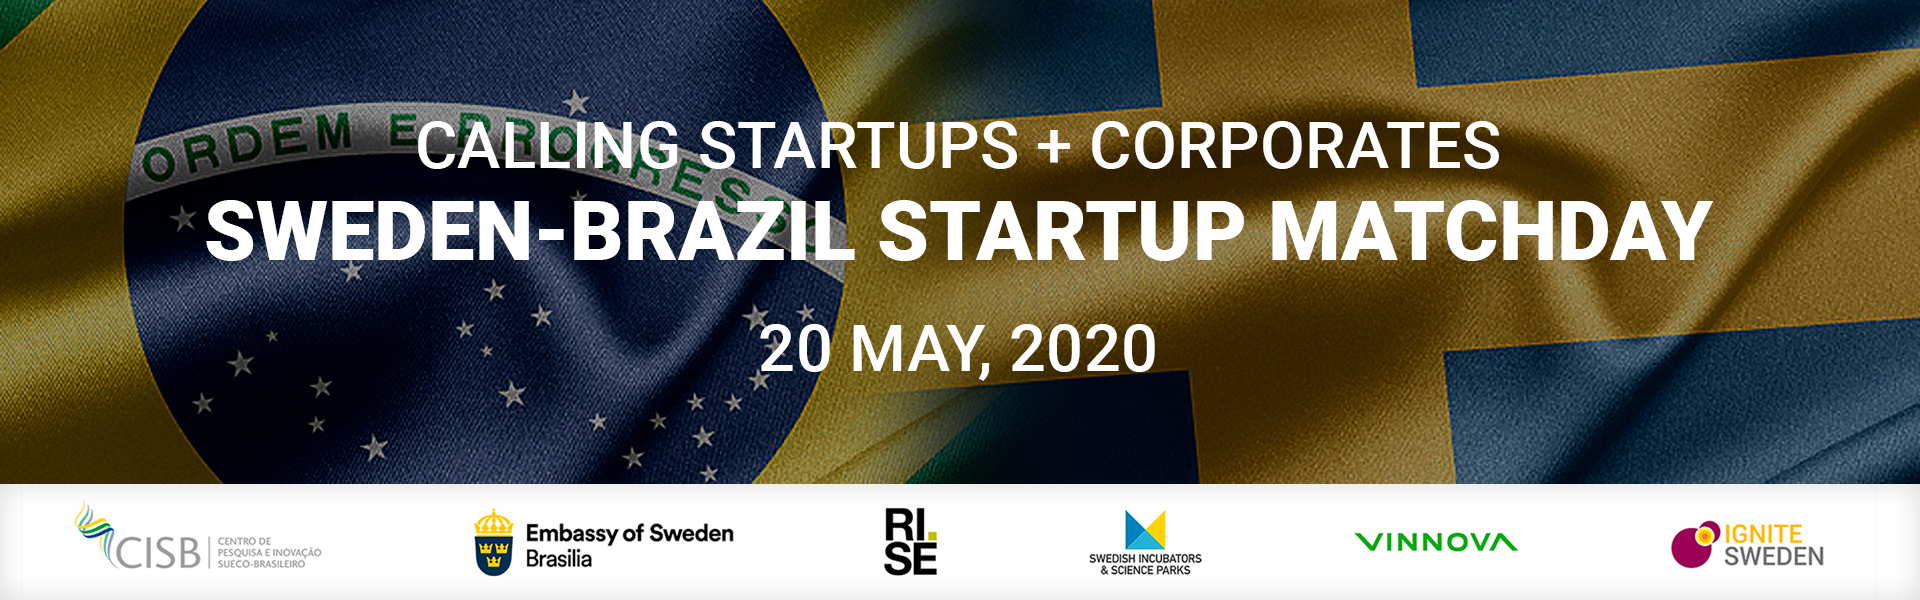 Sweden Brazil Startup Matchday 20 May 2020 2